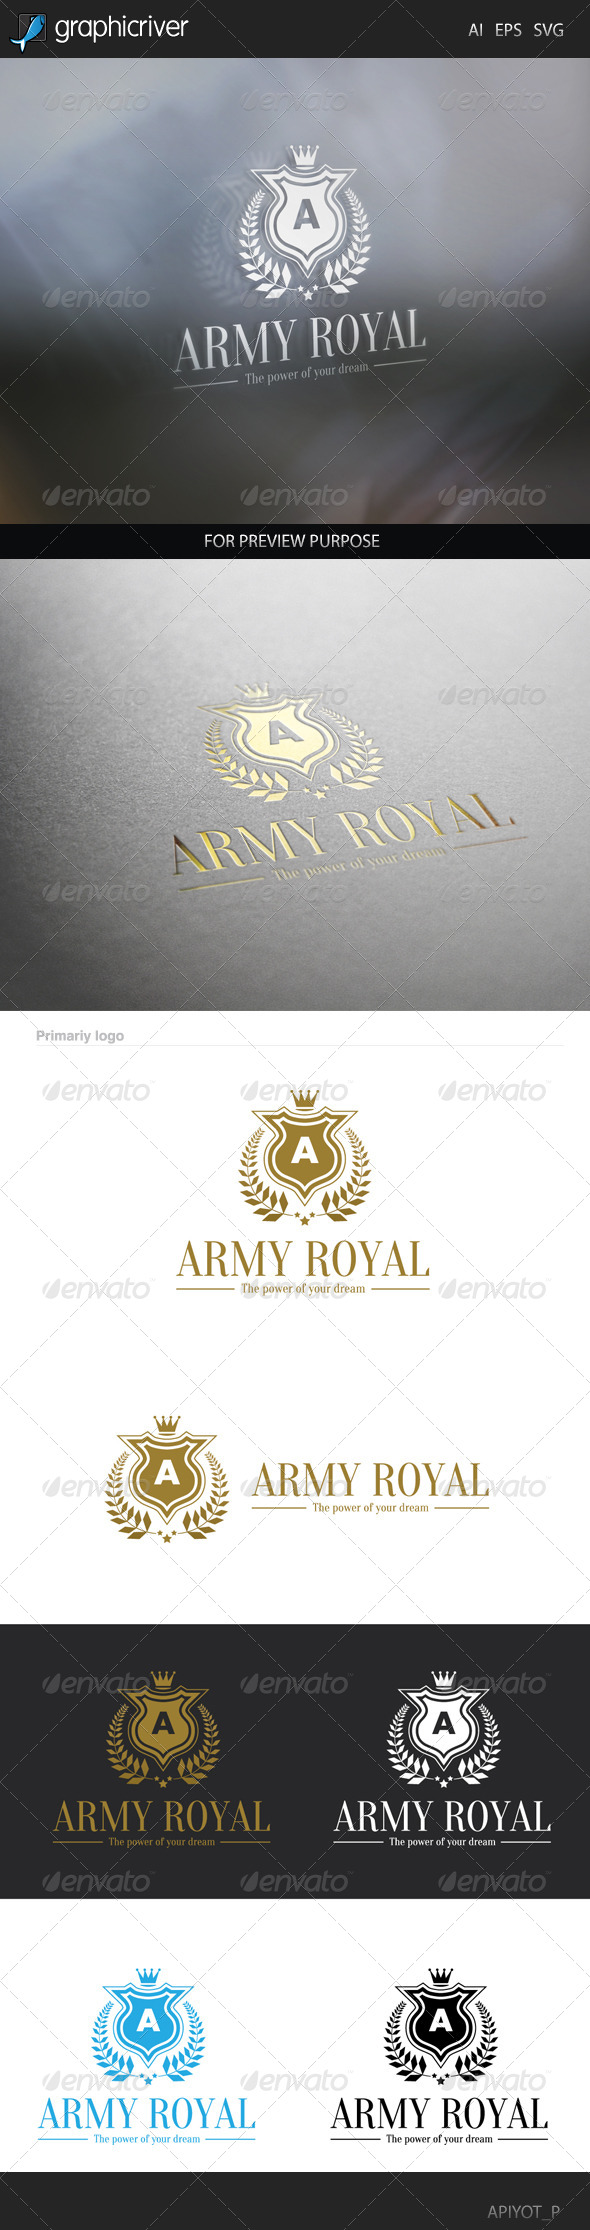 GraphicRiver Army Royal Logo 8488348